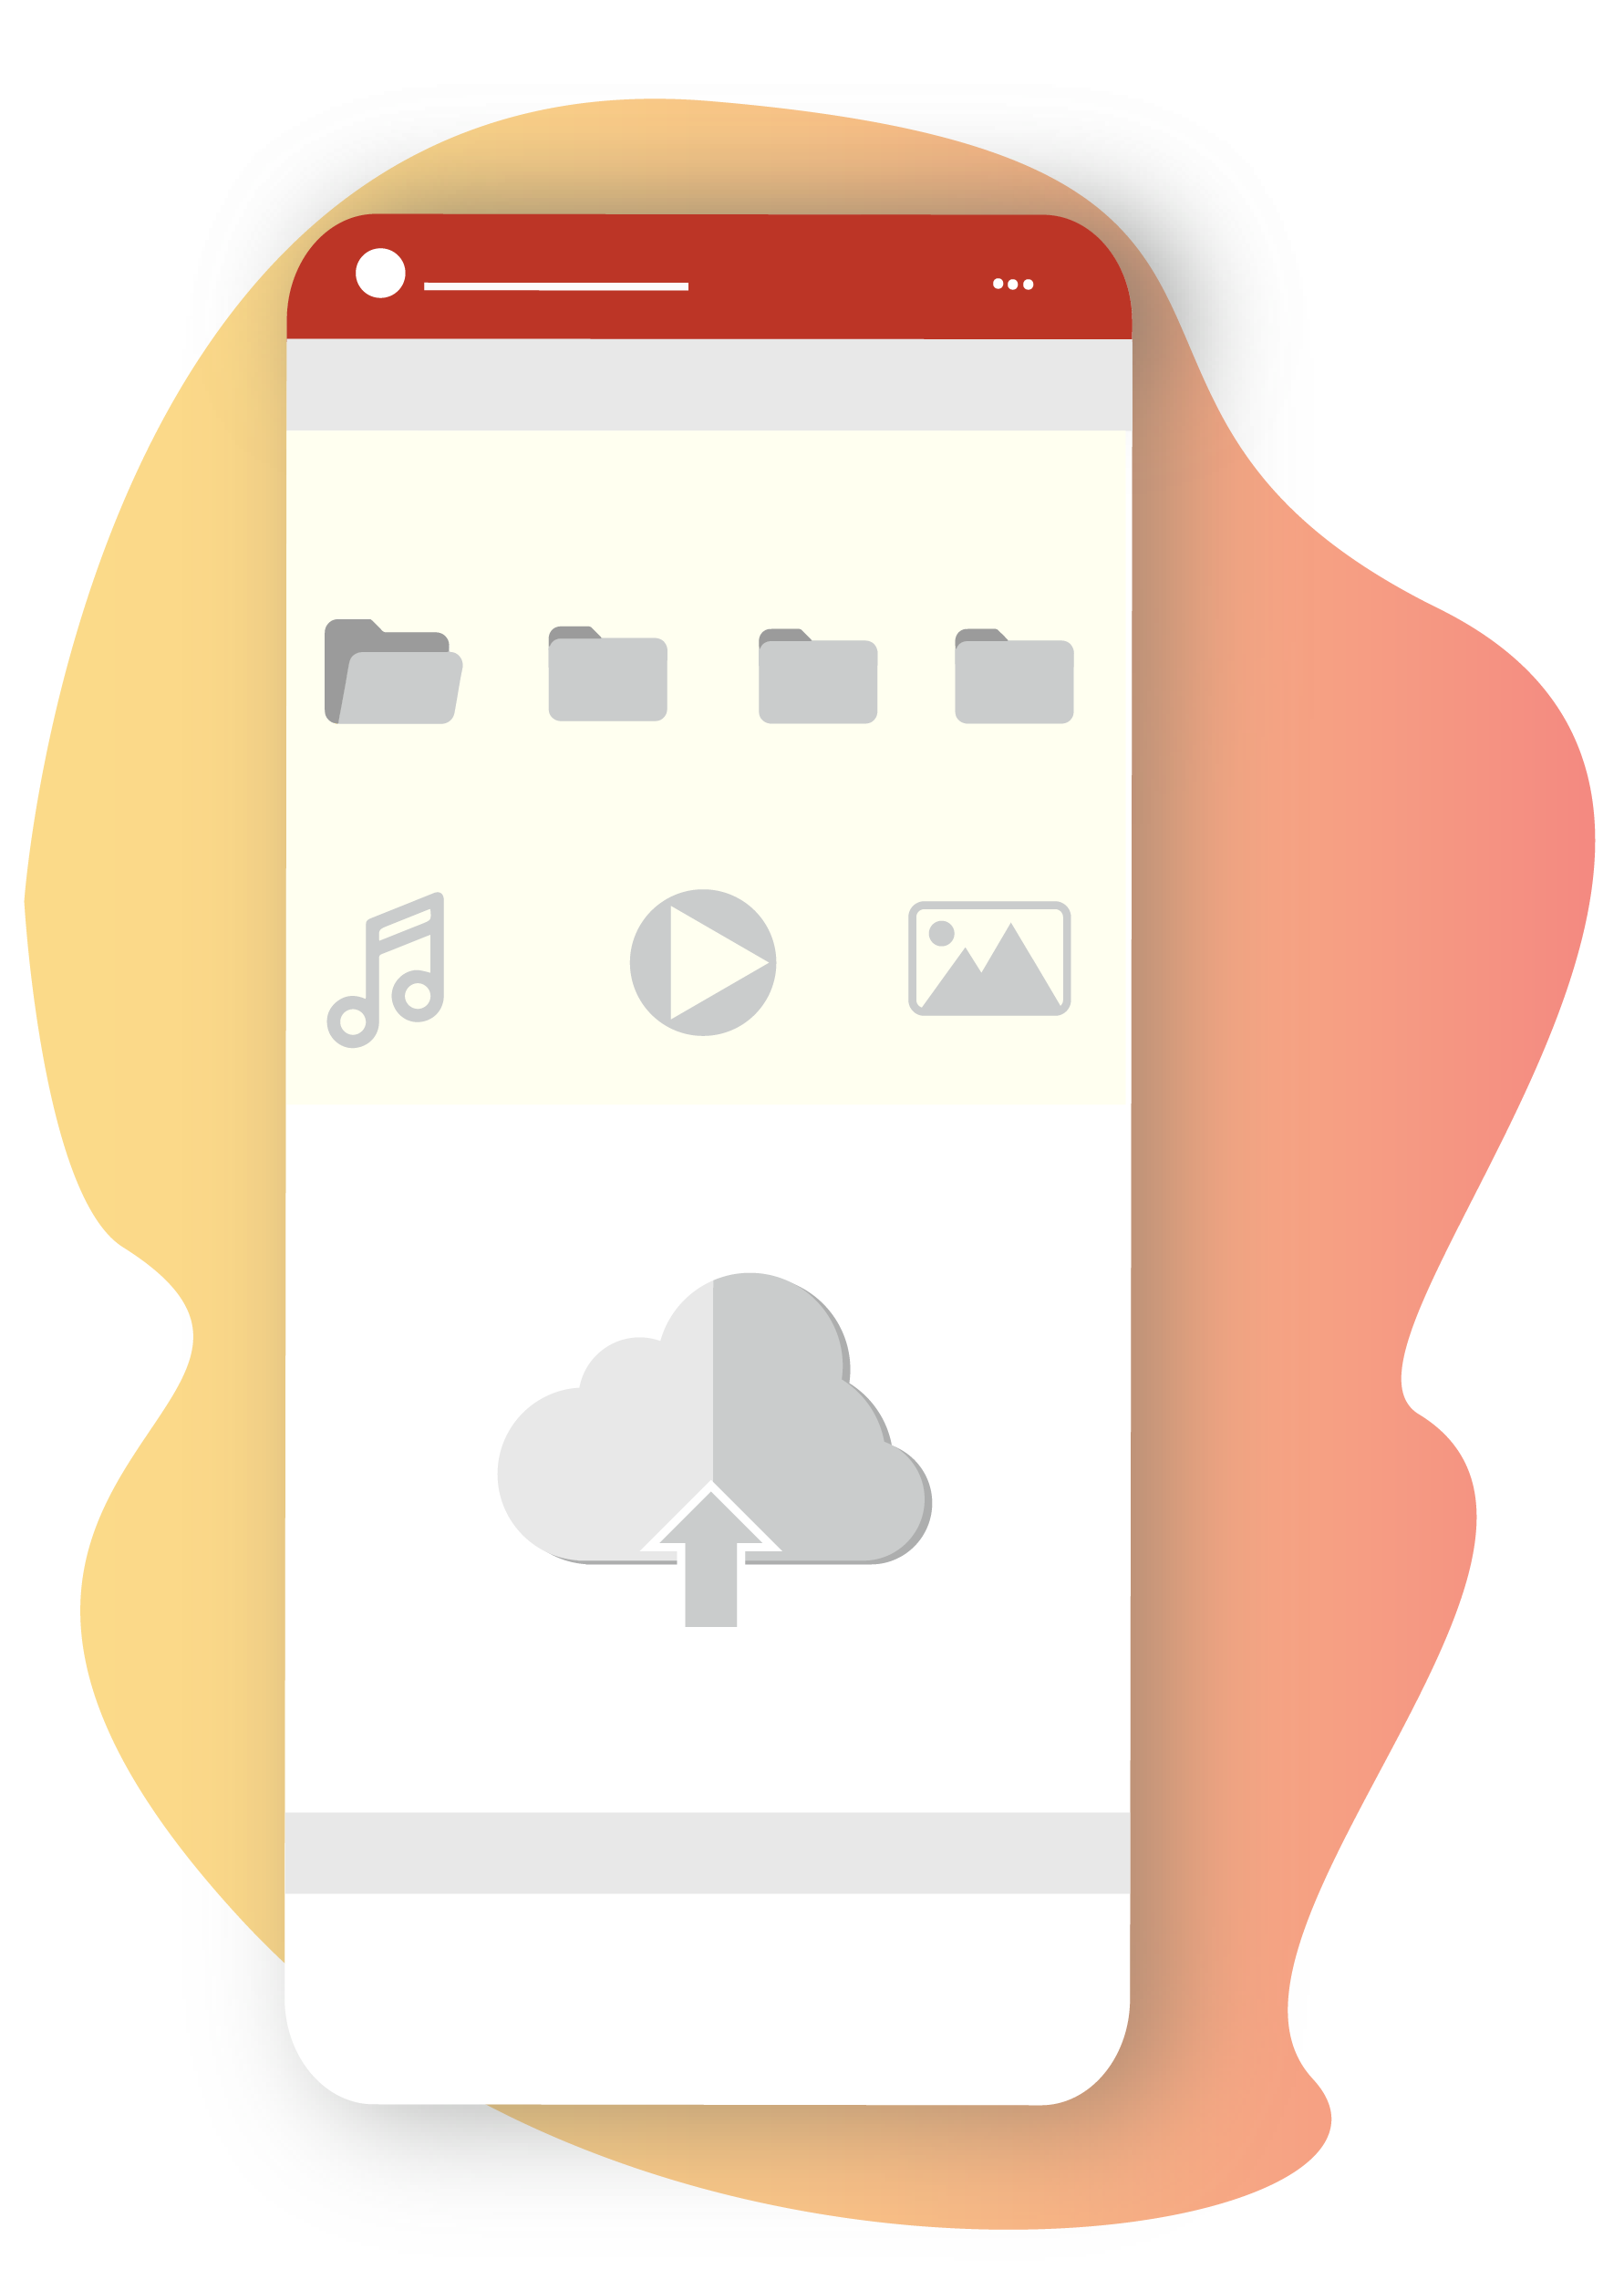 A mobile screen showing some folders, files, cloud, music, videos icons